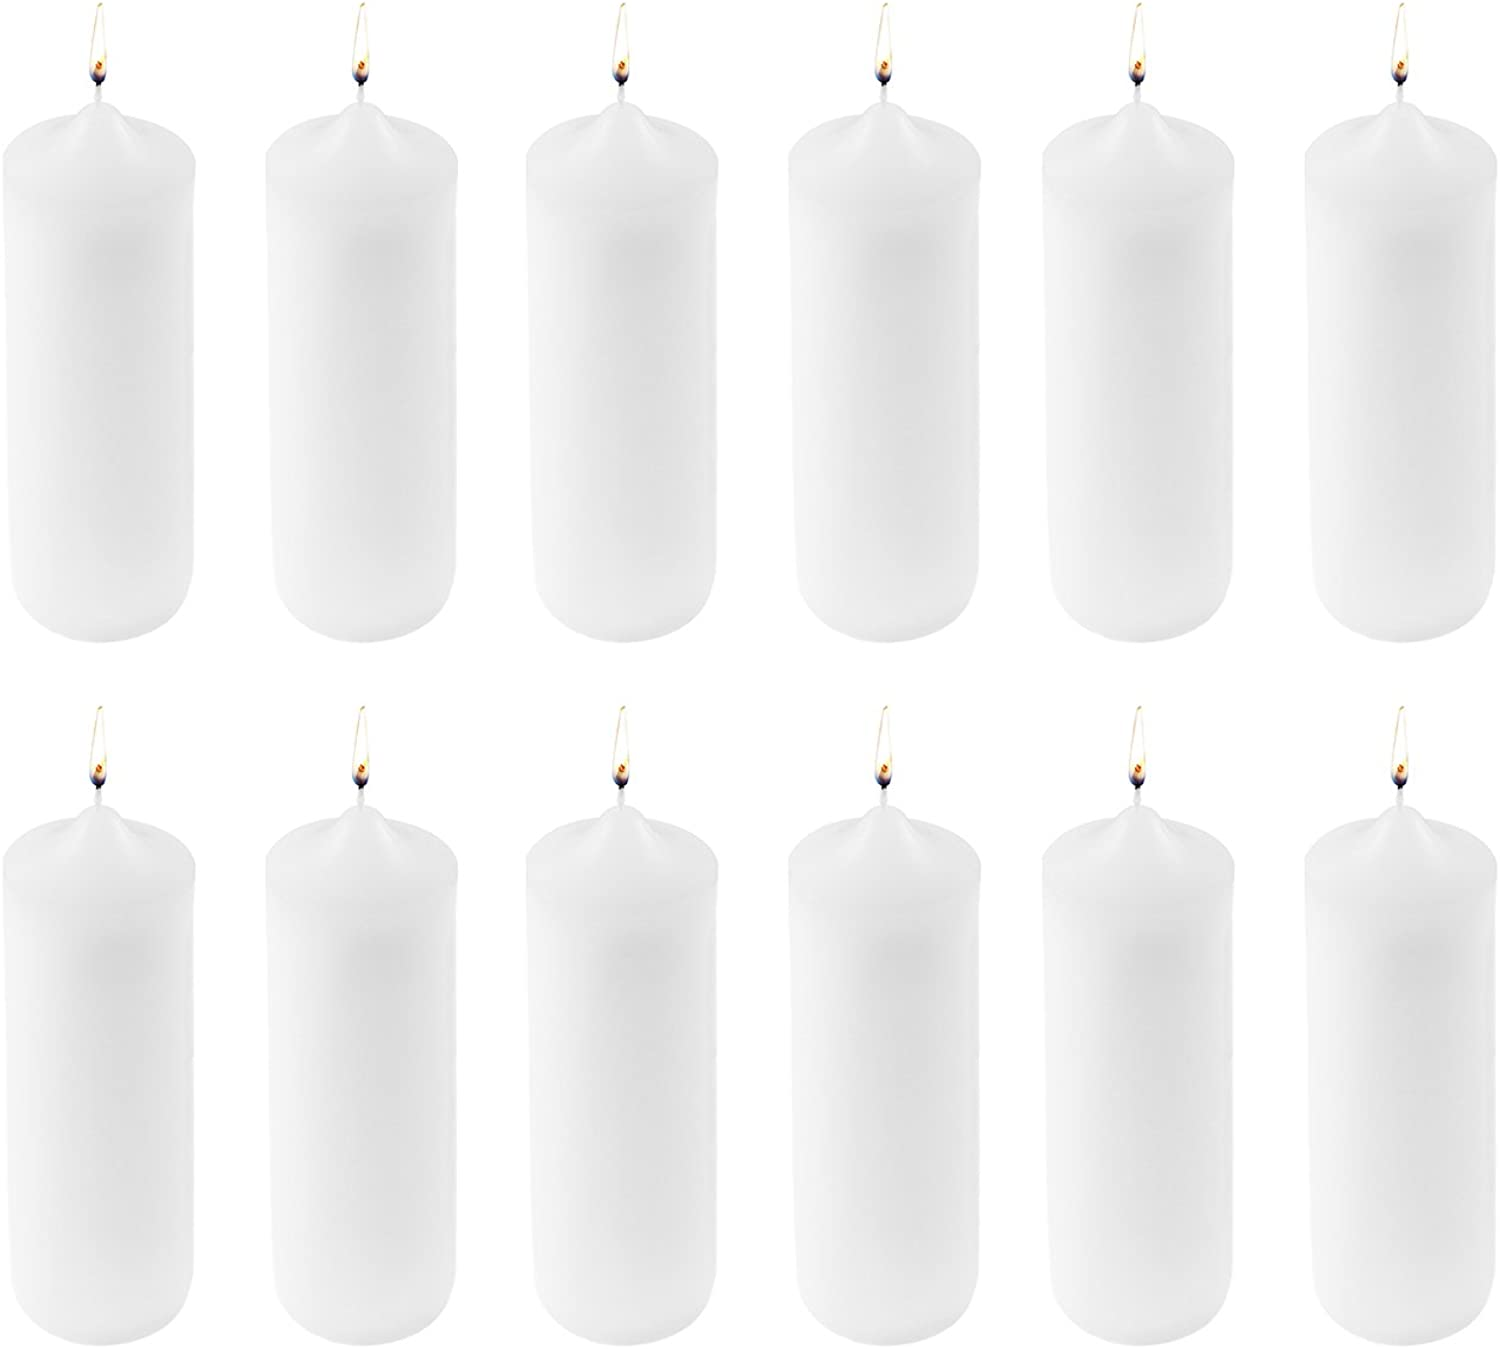 Super Z Outlet 3 x 9 Unscented Pillar Candles for Home Decoration, Weddings, Relaxation, Spa, Smokeless Cotton Wick. (12 Pack) (White)